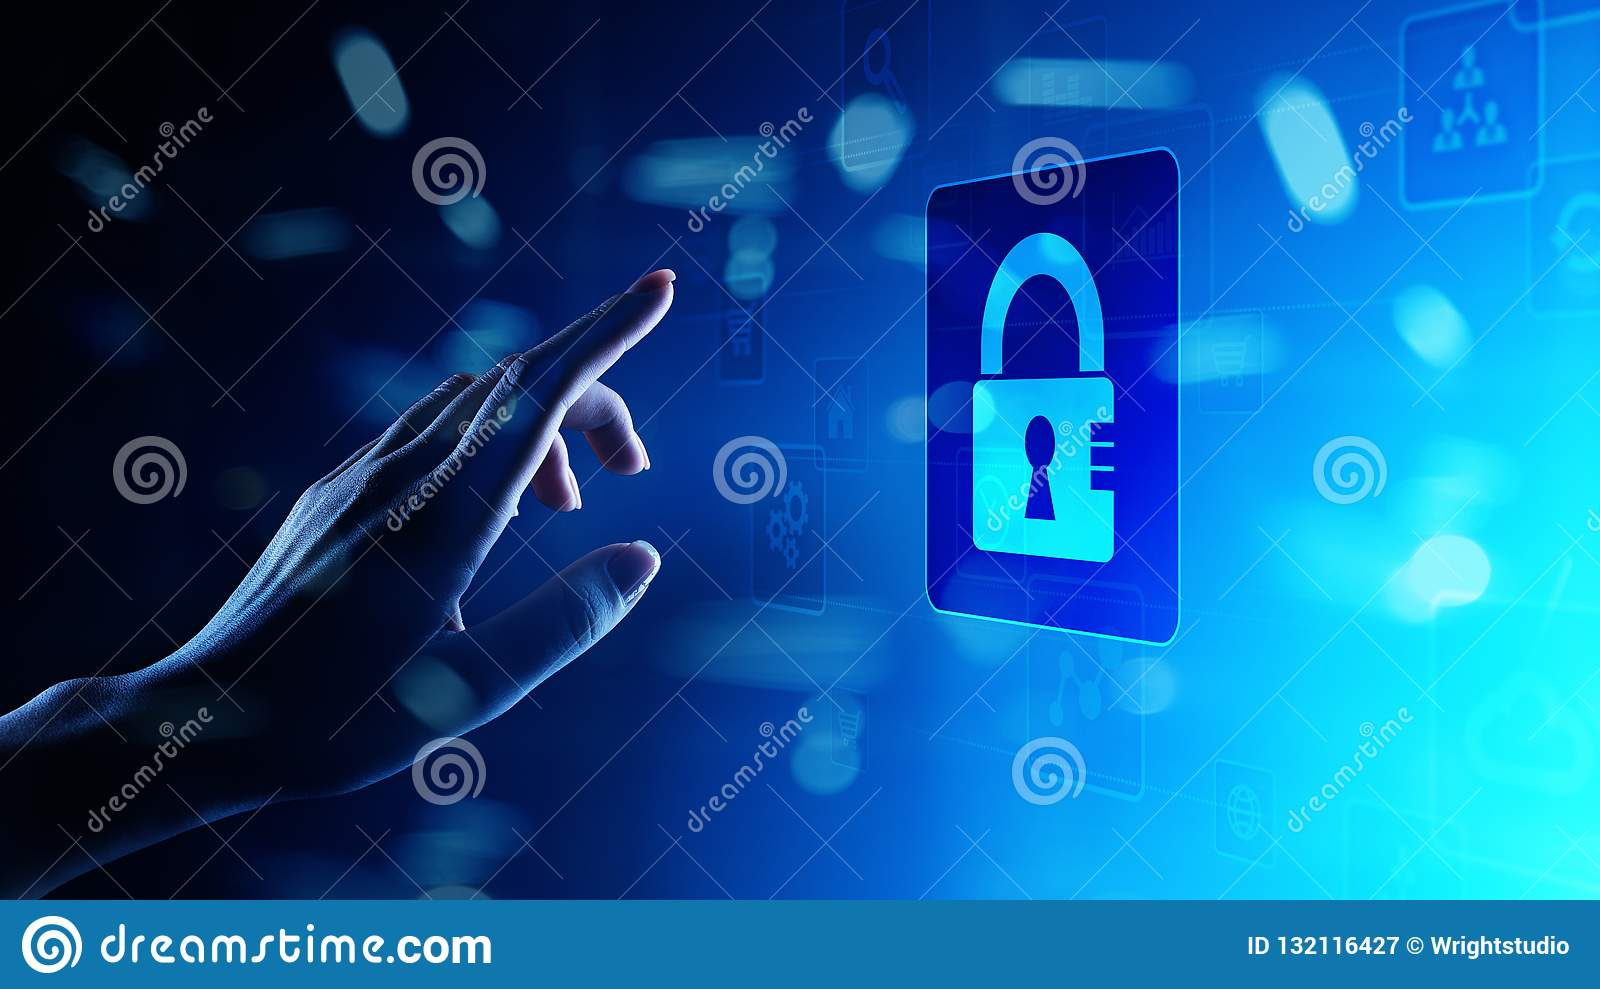 Cyber security, Personal data protection, information privacy. Padlock icon on virtual screen. technology concept.